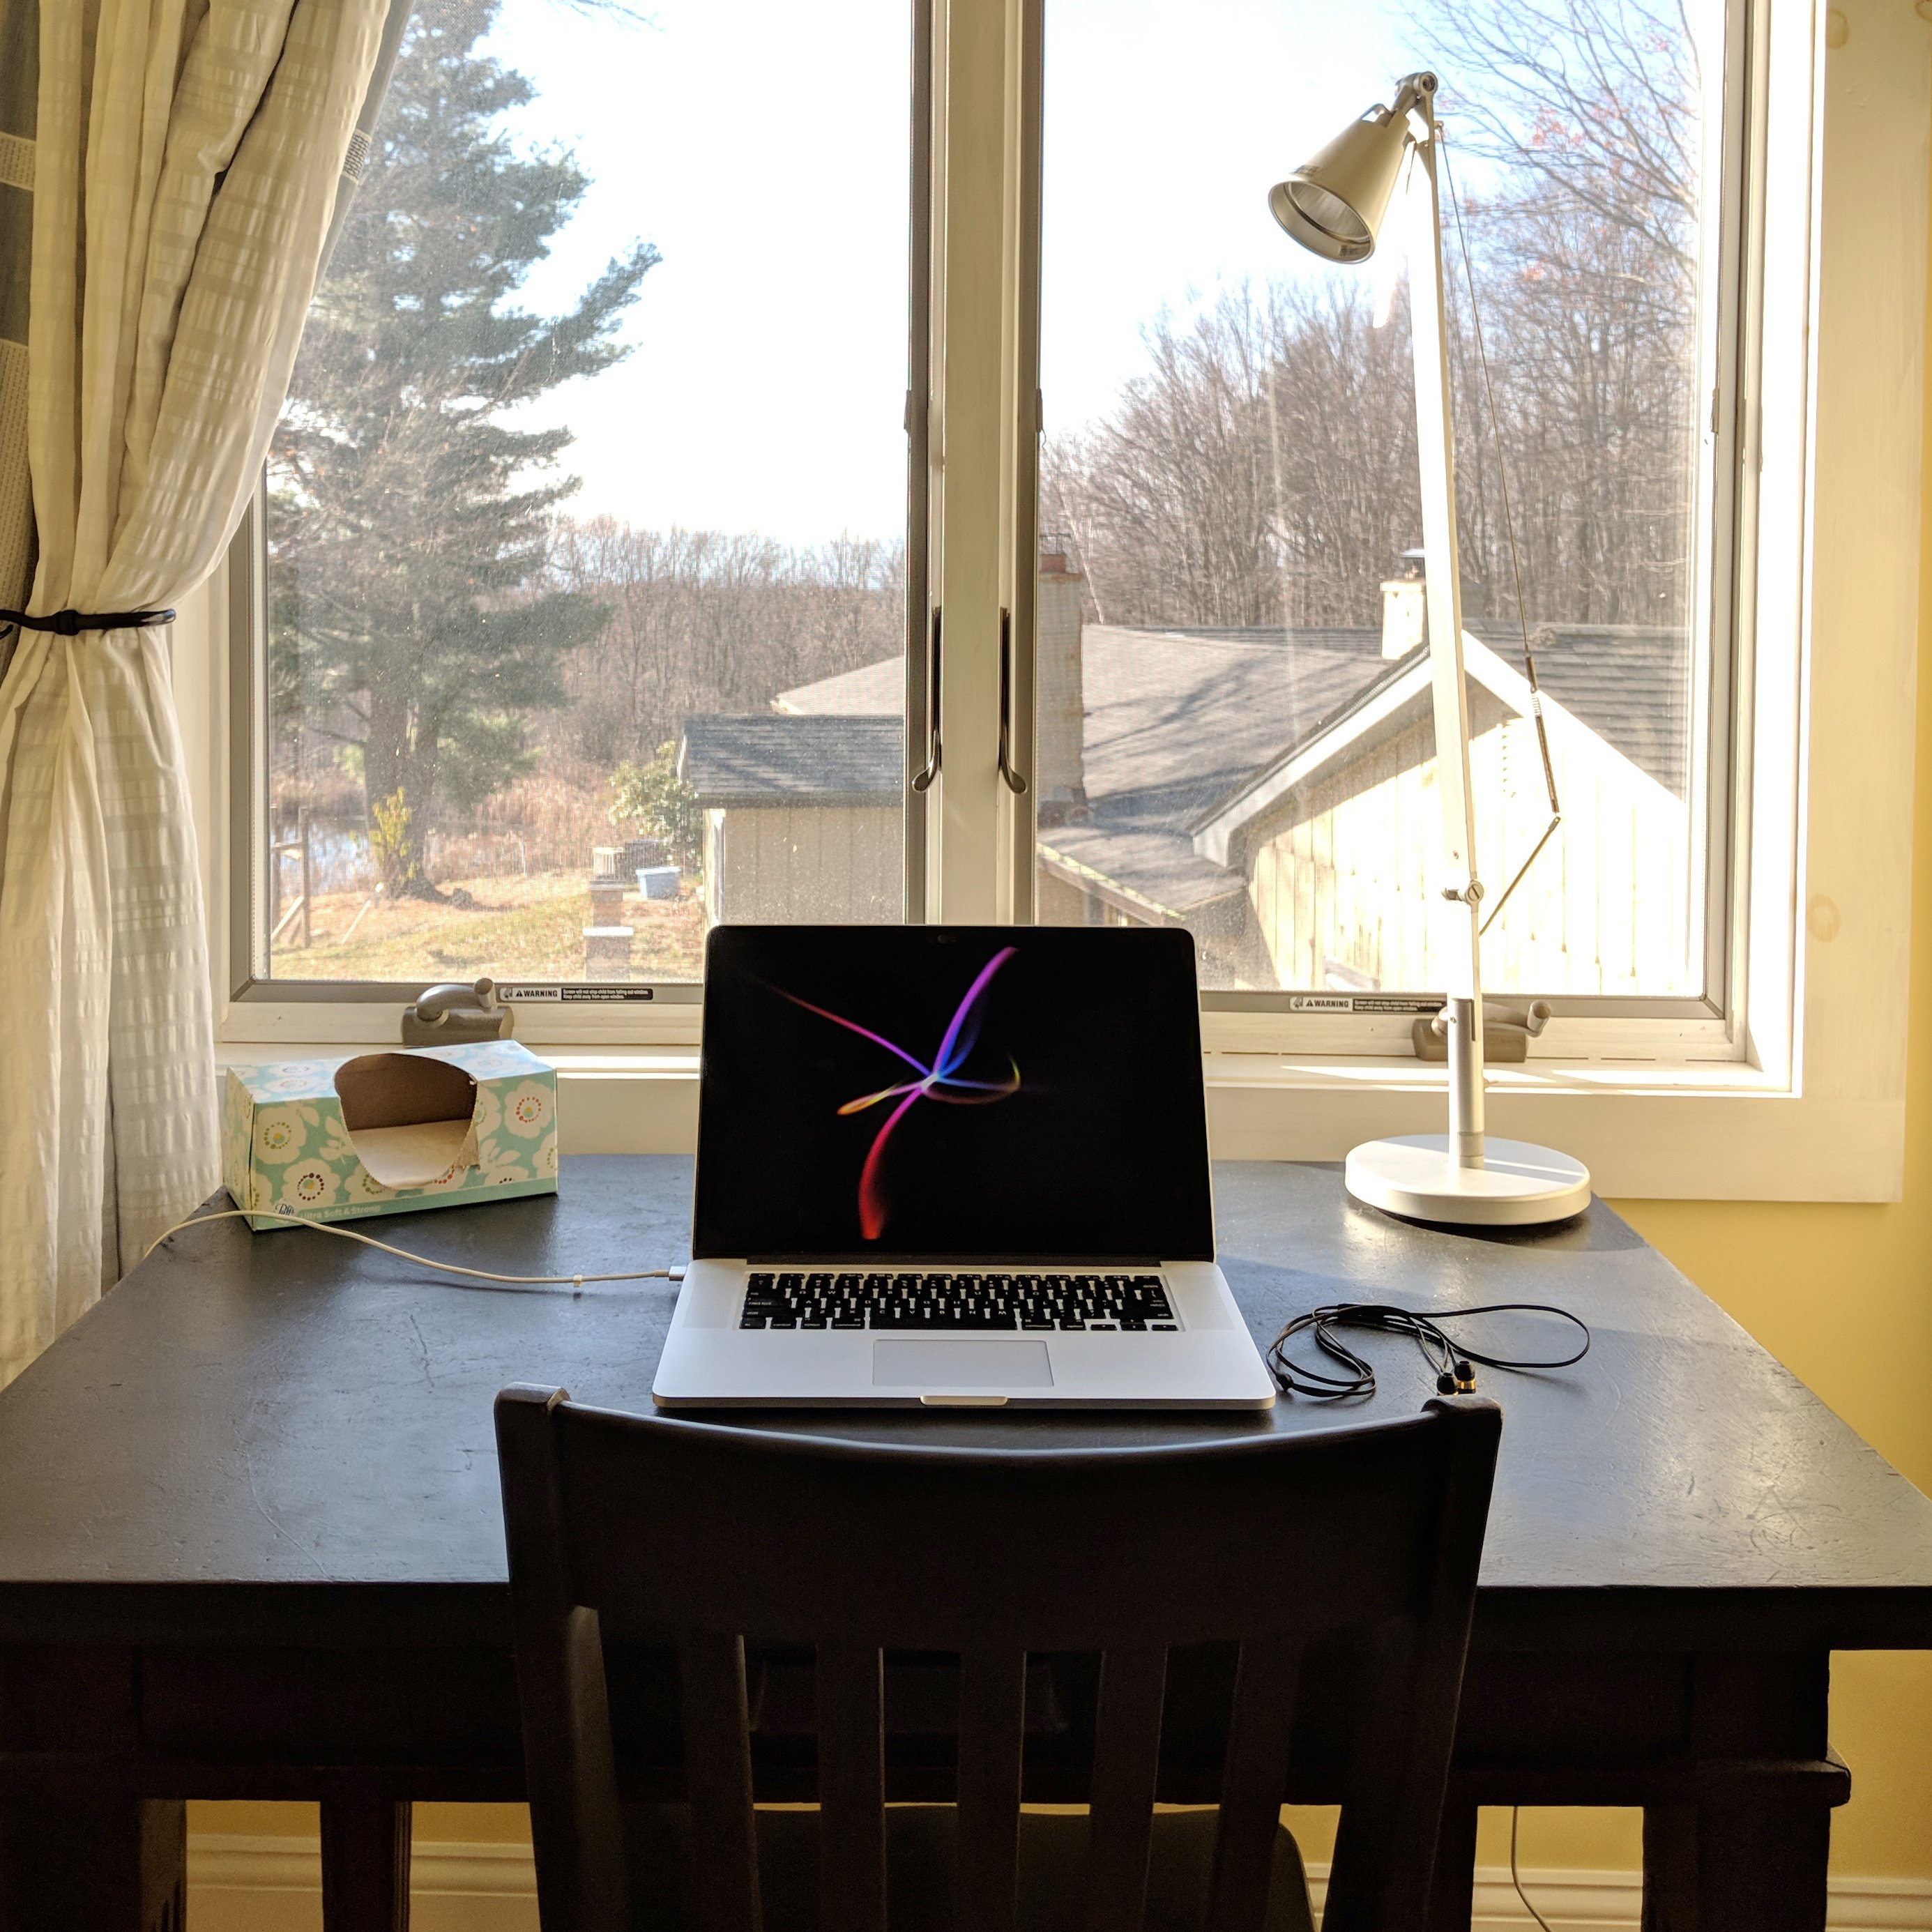 A focused workstation overlooking a small family farm in Ghent, New York